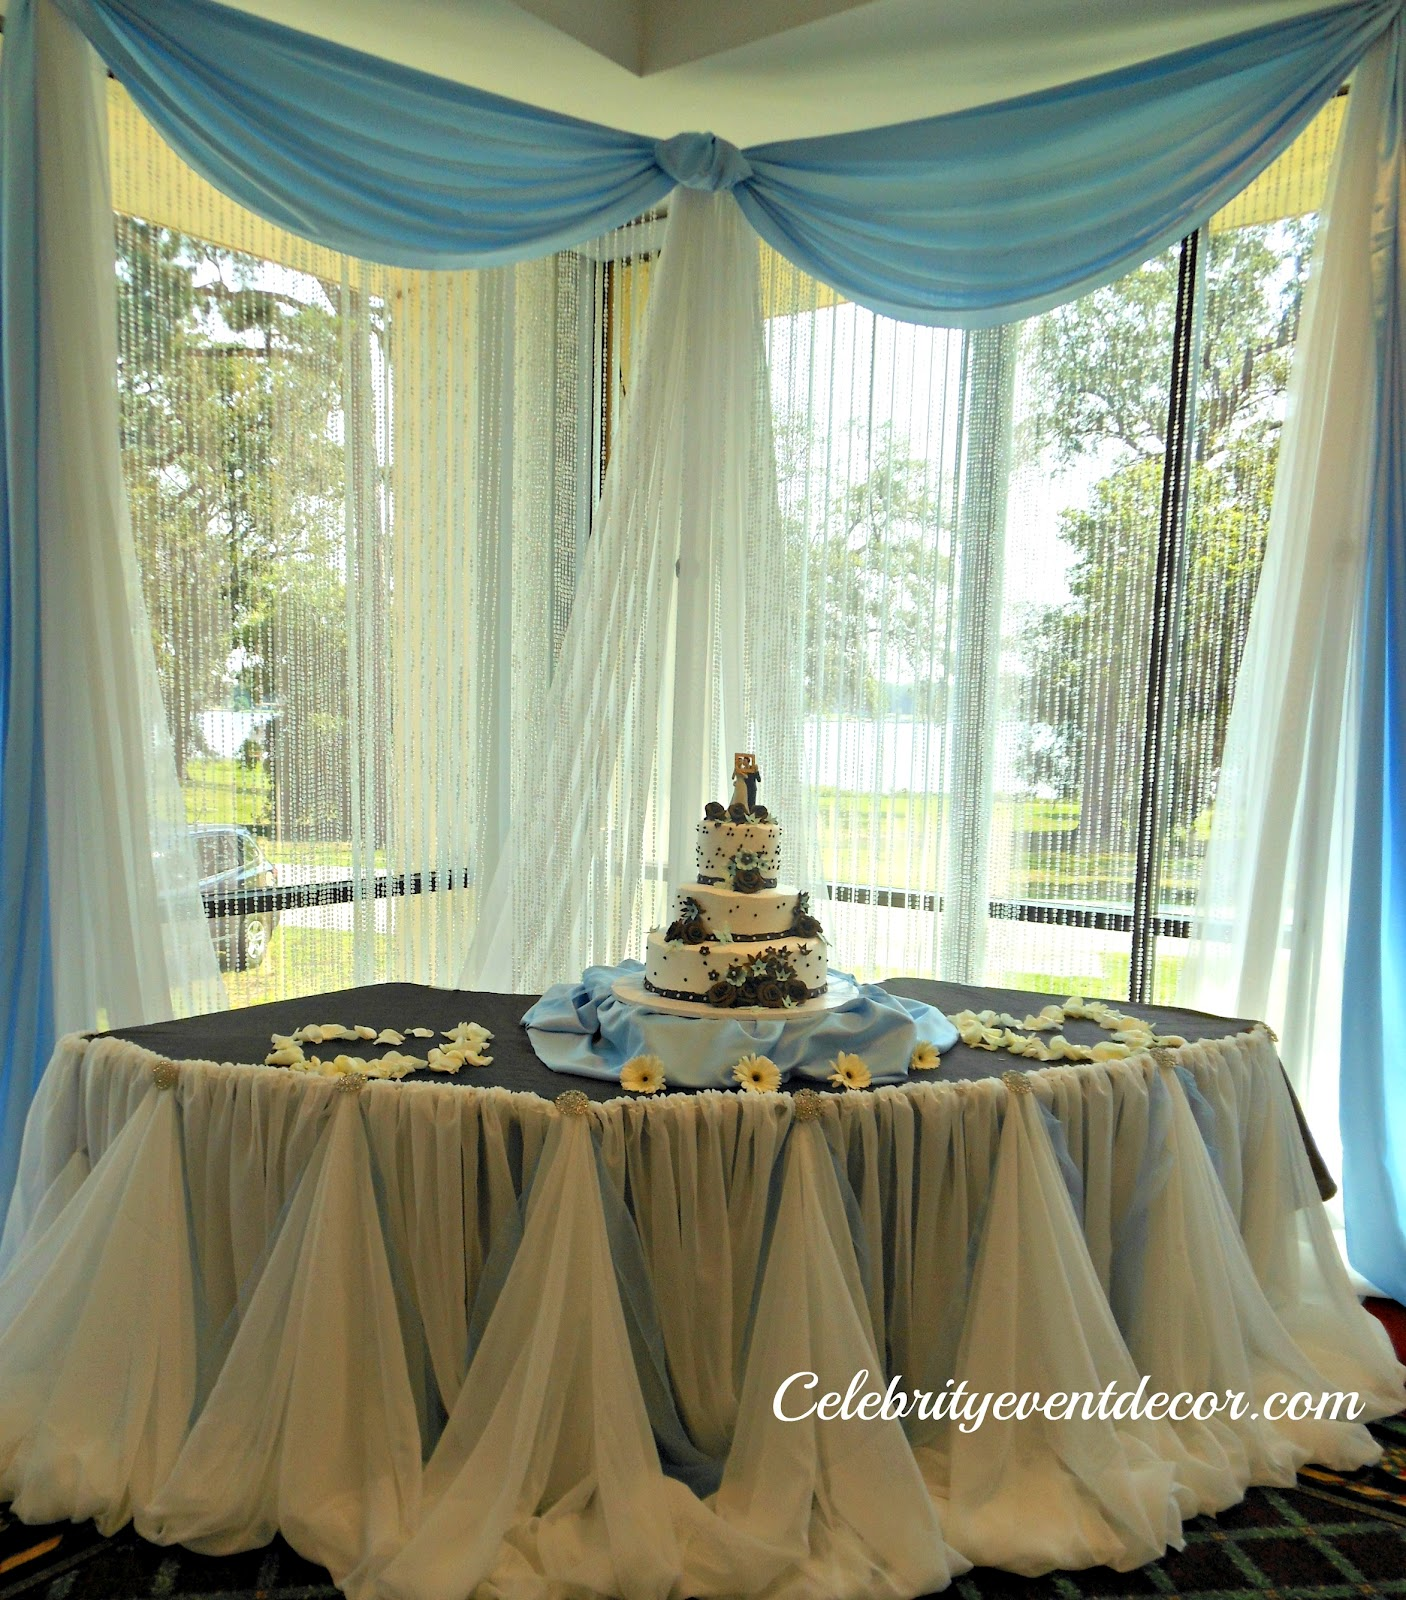 Cake table decoration with an elegant table Cinderella skirt accented ...